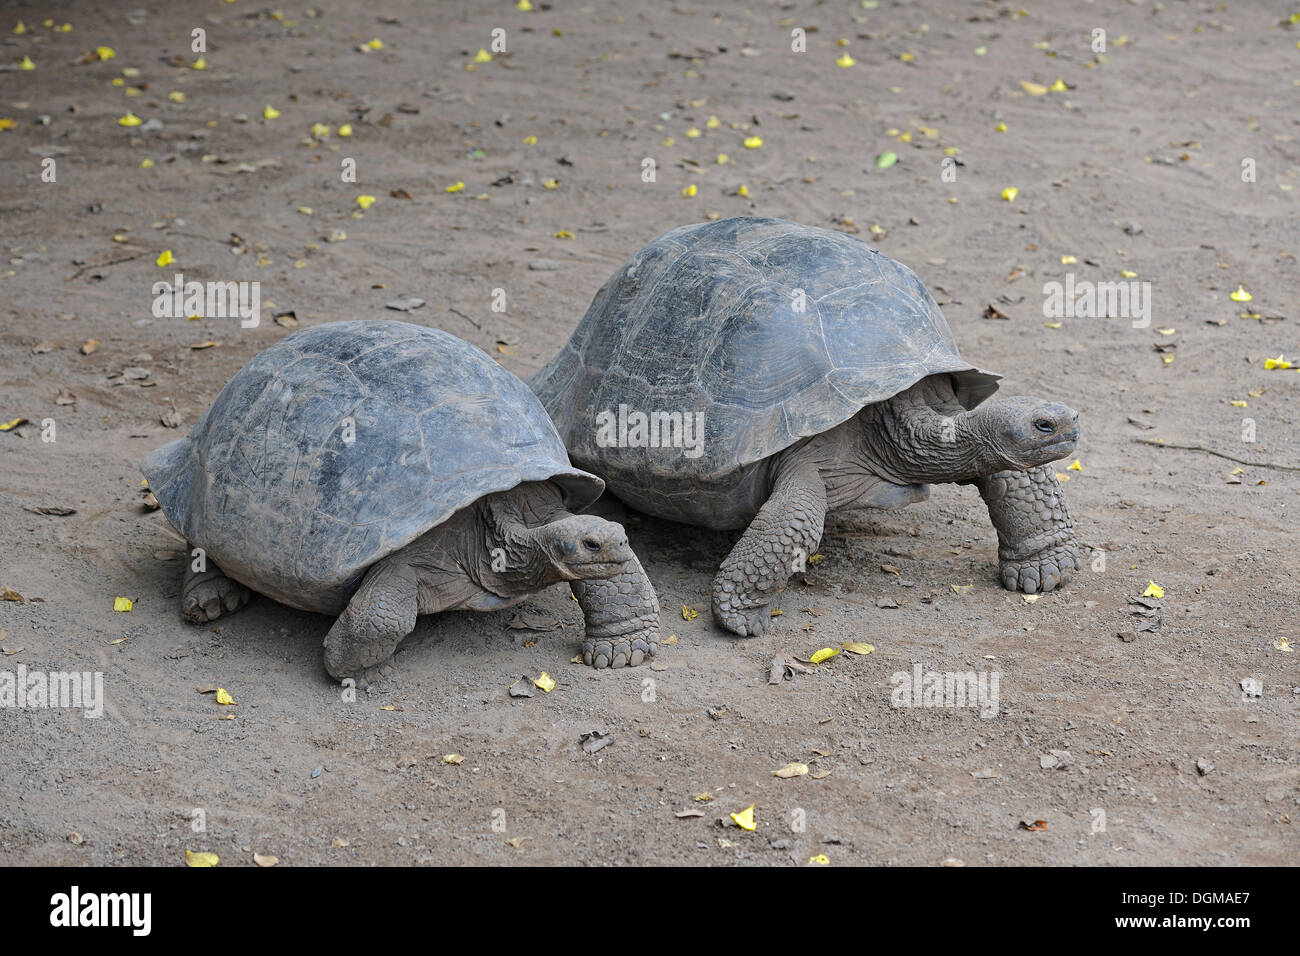 Mature specimens of the Galapagos Giant Tortoise (Geochelone elephantopus guentheri), subspecies from the Sierra Negra area on - Stock Image